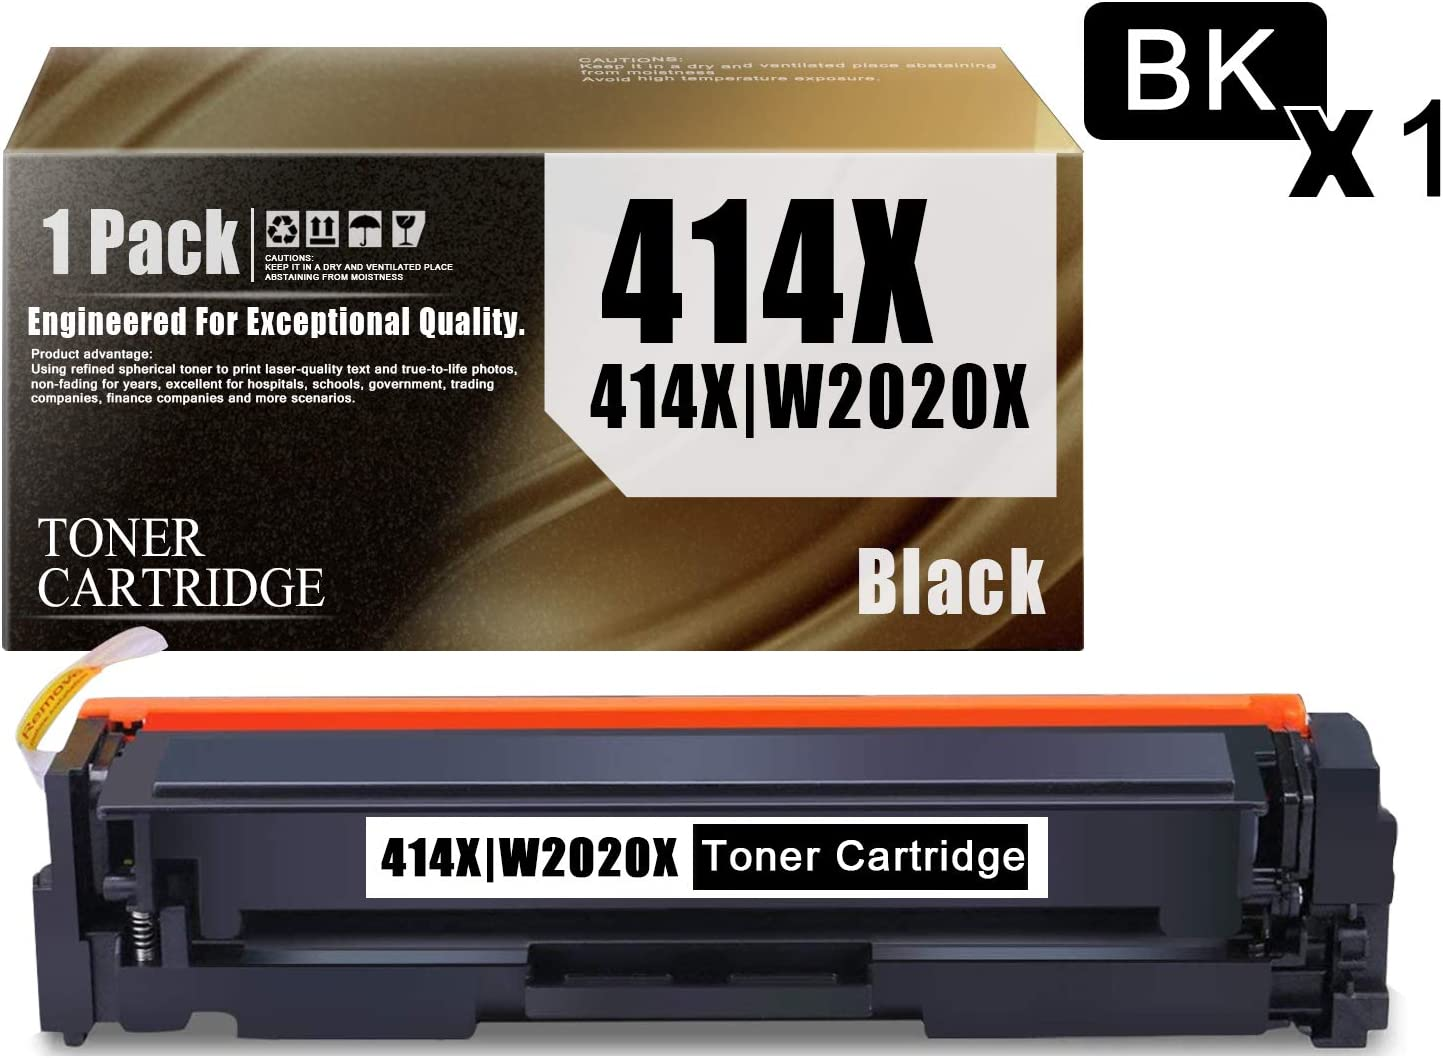 414X   W2020X Quality Compatible Toner Cartridge 1-Pack Black Replacement for HP Color Laser Jet Pro MFP M479fnw M479fdn M479fdw M479fnw M479fdn M479fdw Printers